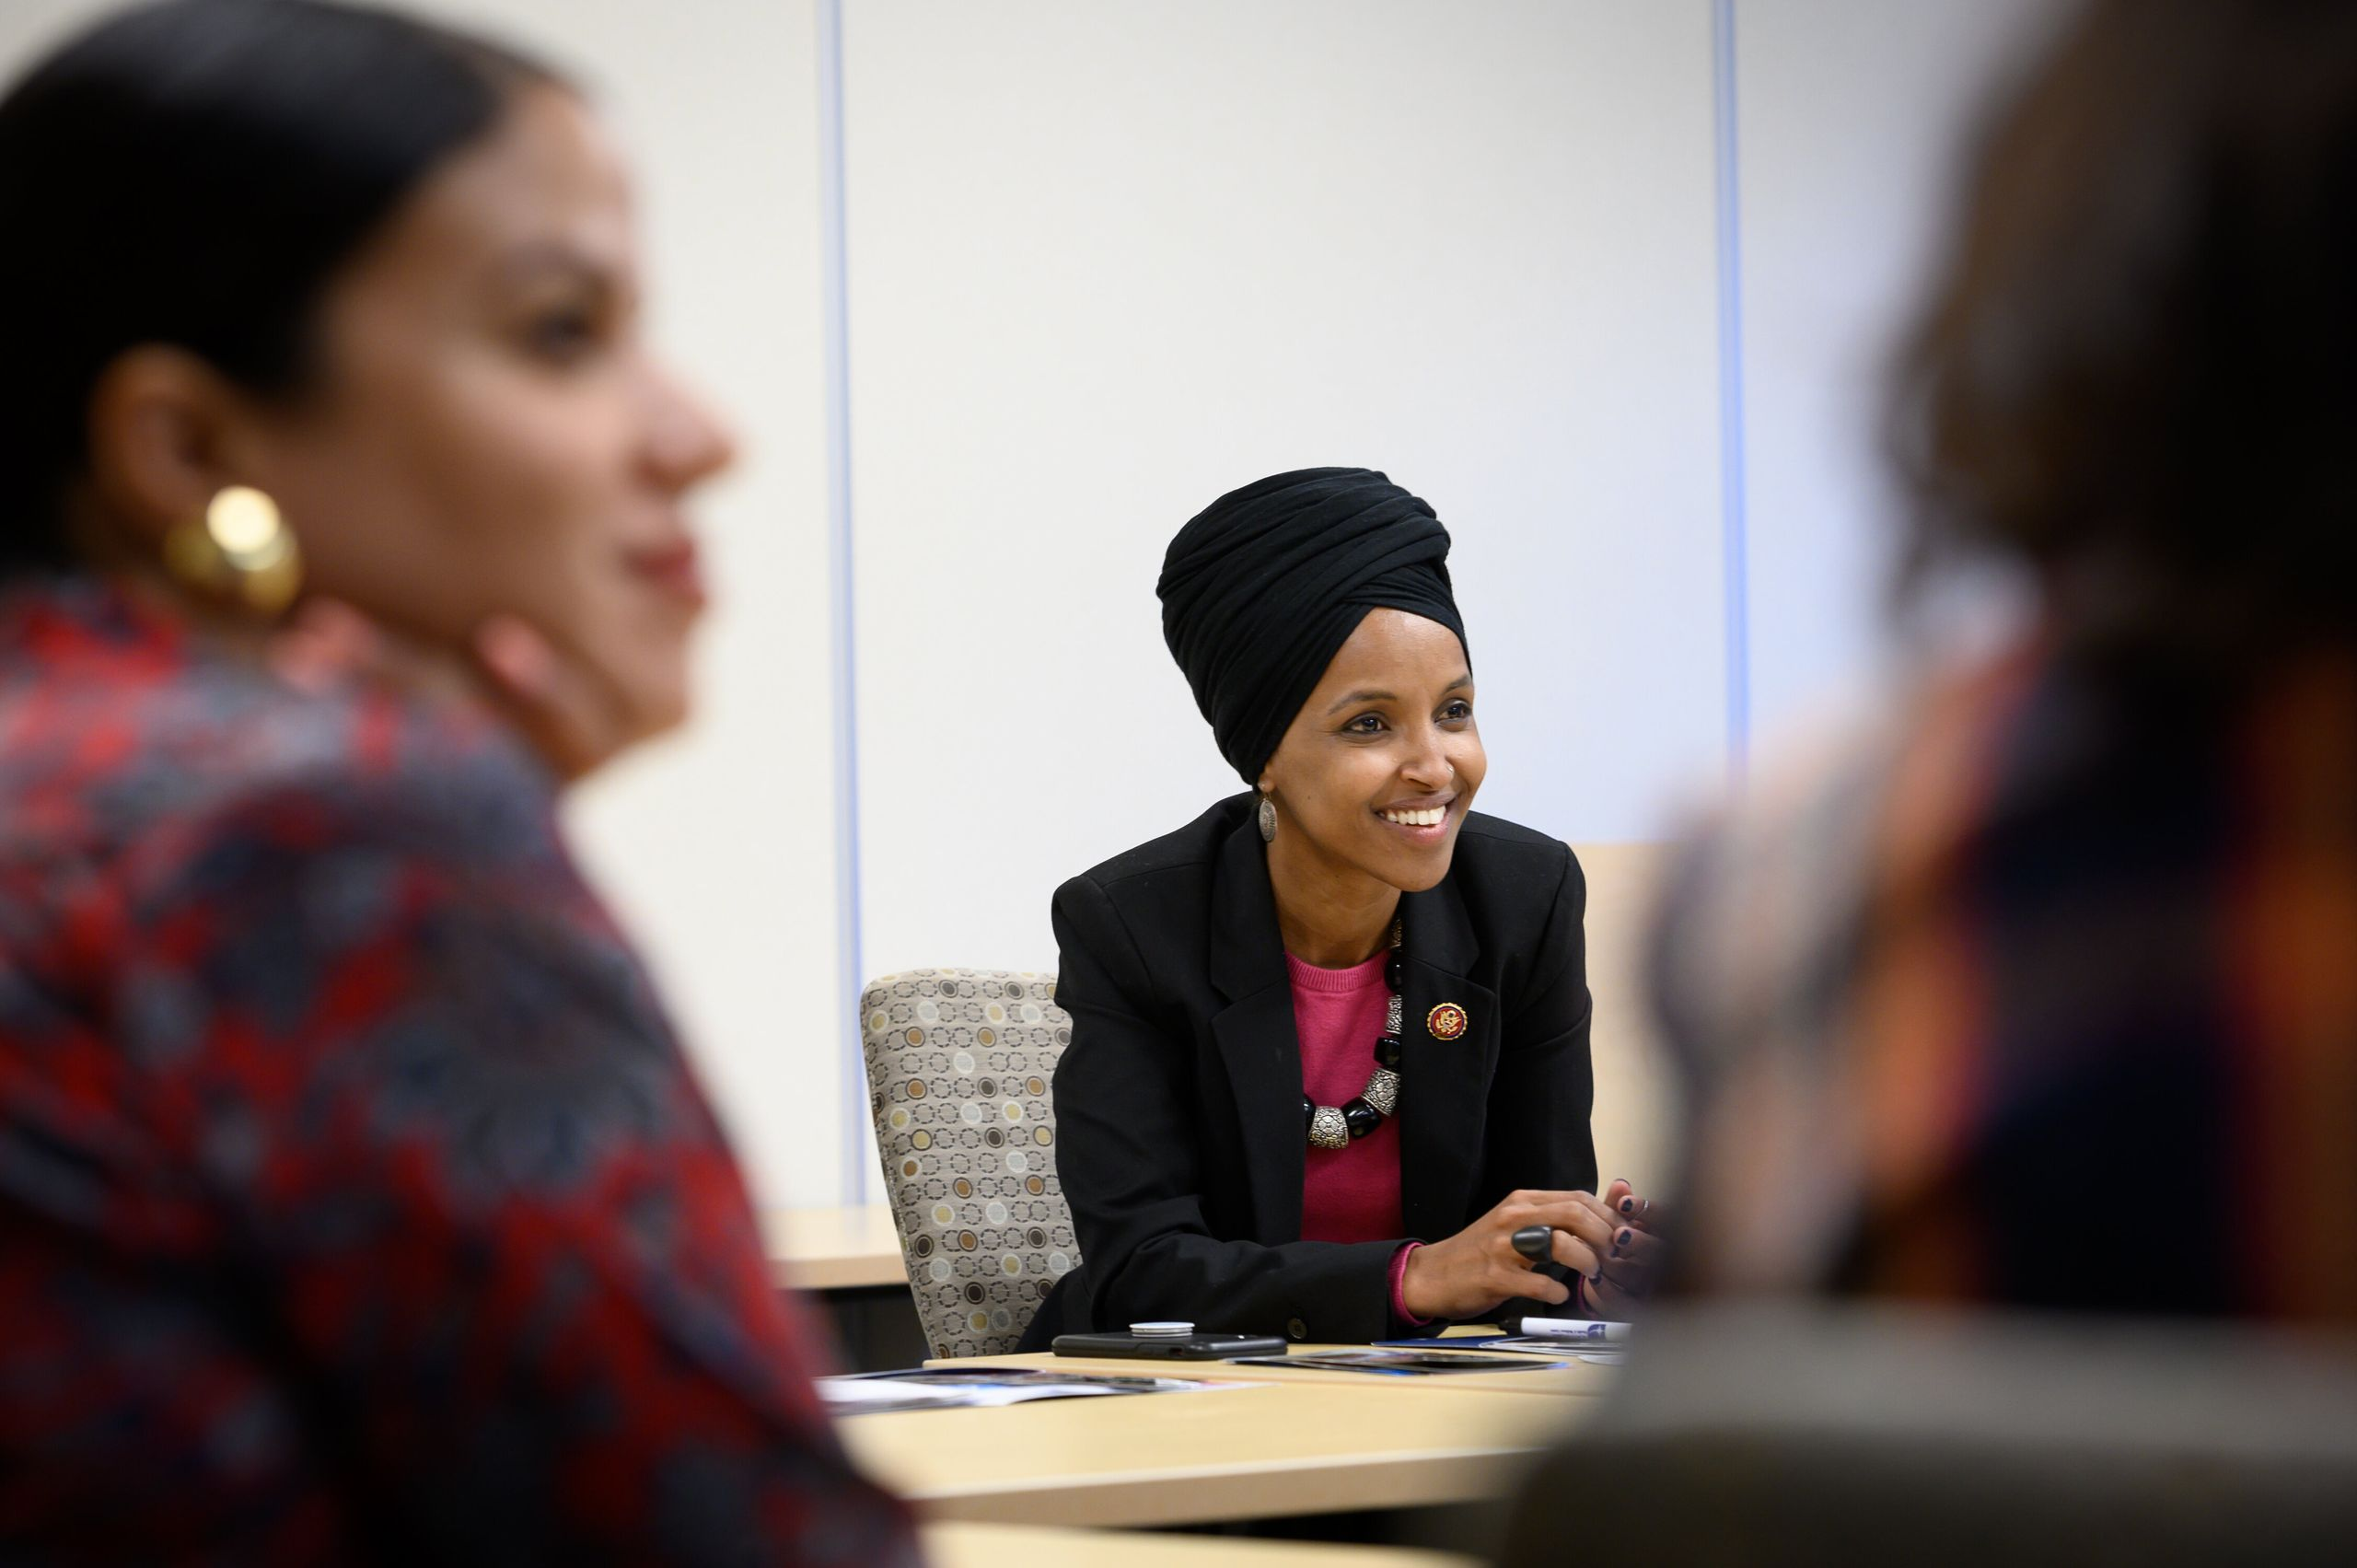 Omar meets with employees of Northpoint Health & Wellness Center in North Minneapolis on April 24, 2019.